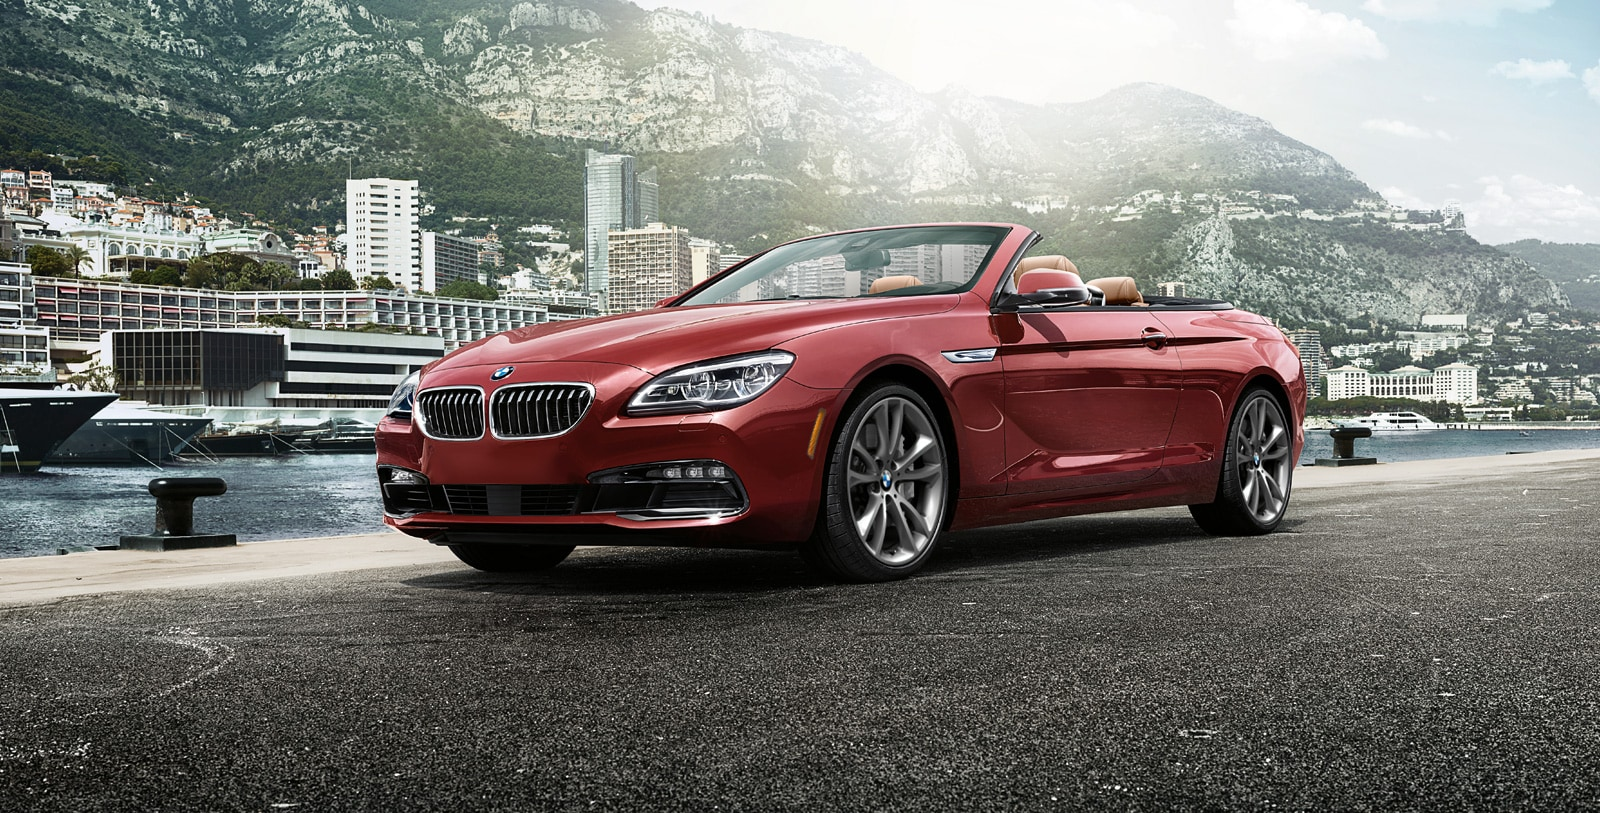 bmw 6 series convertible model overview bmw north america. Black Bedroom Furniture Sets. Home Design Ideas